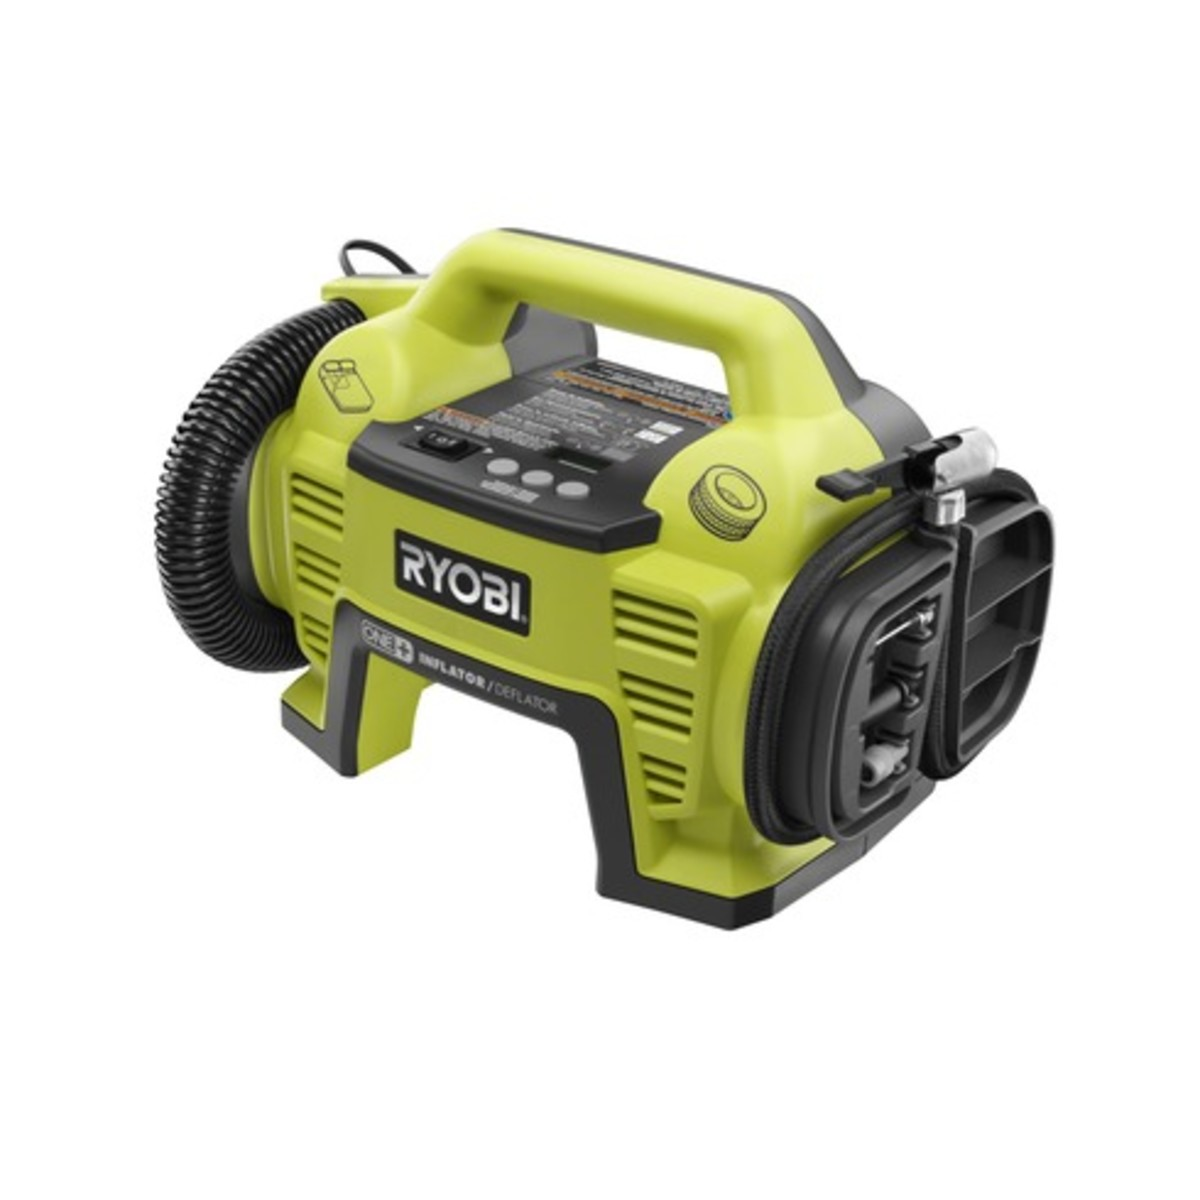 three-cordless-power-tools-every-home-needs